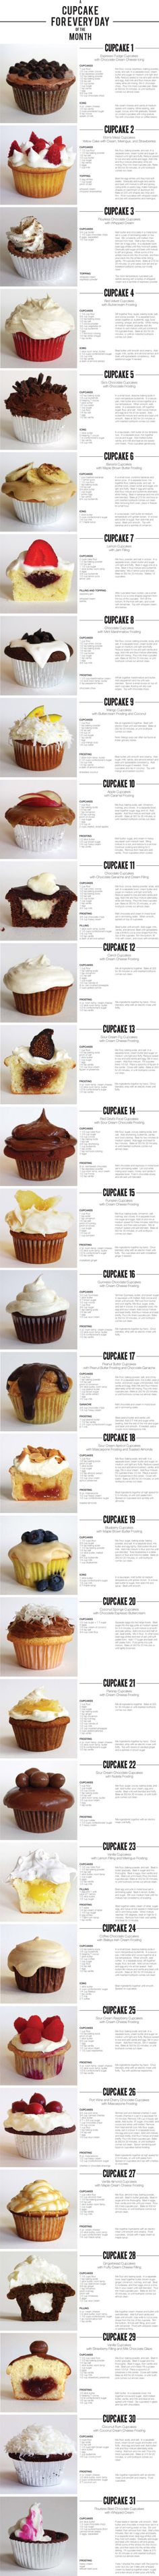 Heck yeah! A cupcake for every day of the month ;-)